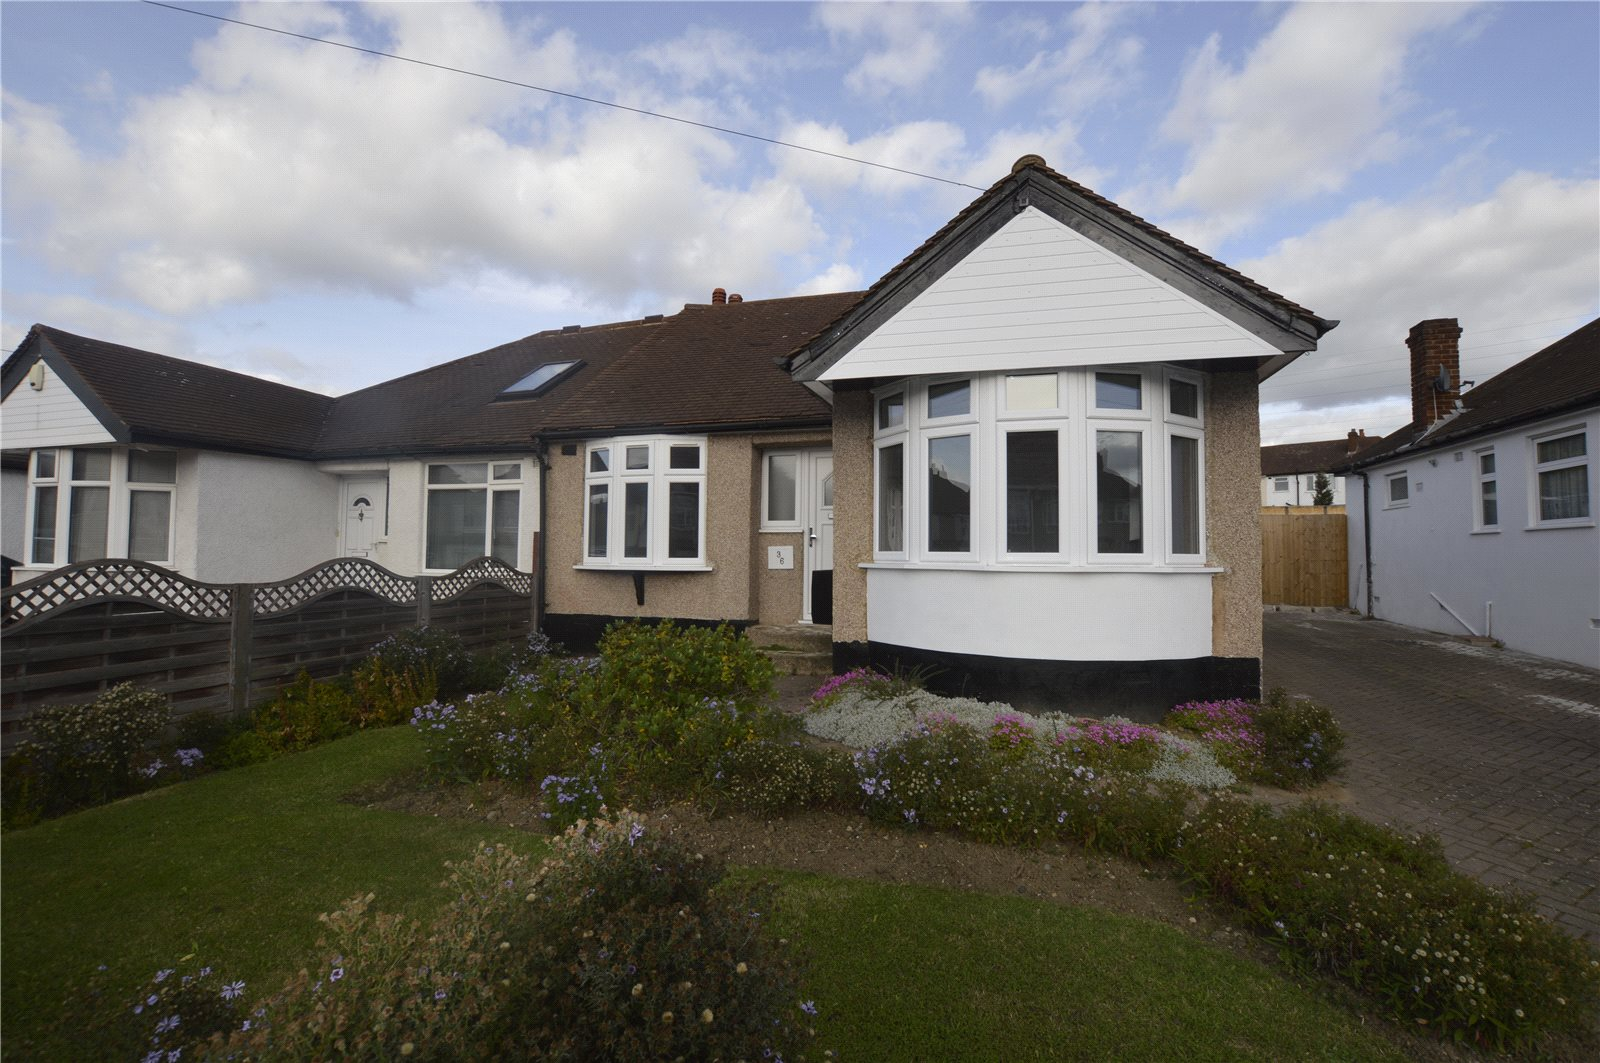 2 Bedrooms Bungalow for sale in Sutherland Avenue Welling Kent DA16